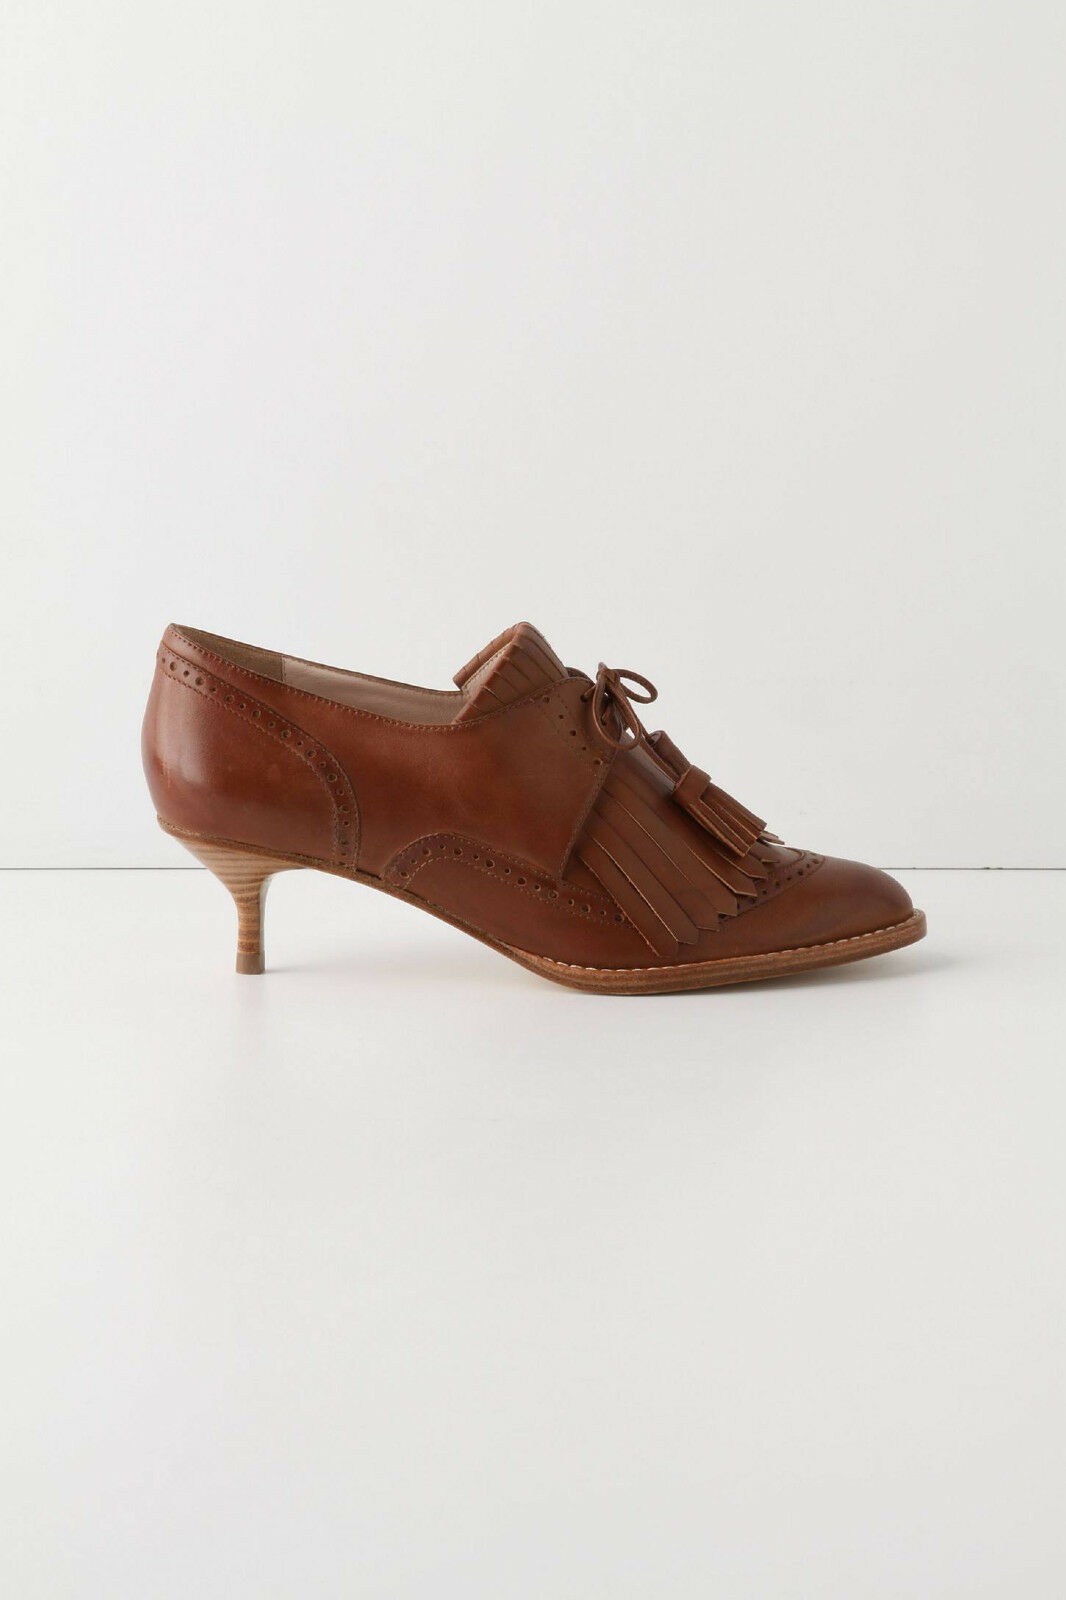 Anthropologie Fortnight Oxfords Leder High Heels Pumps Leder Oxfords Schuhes By Tracy Reese 36 b8556f